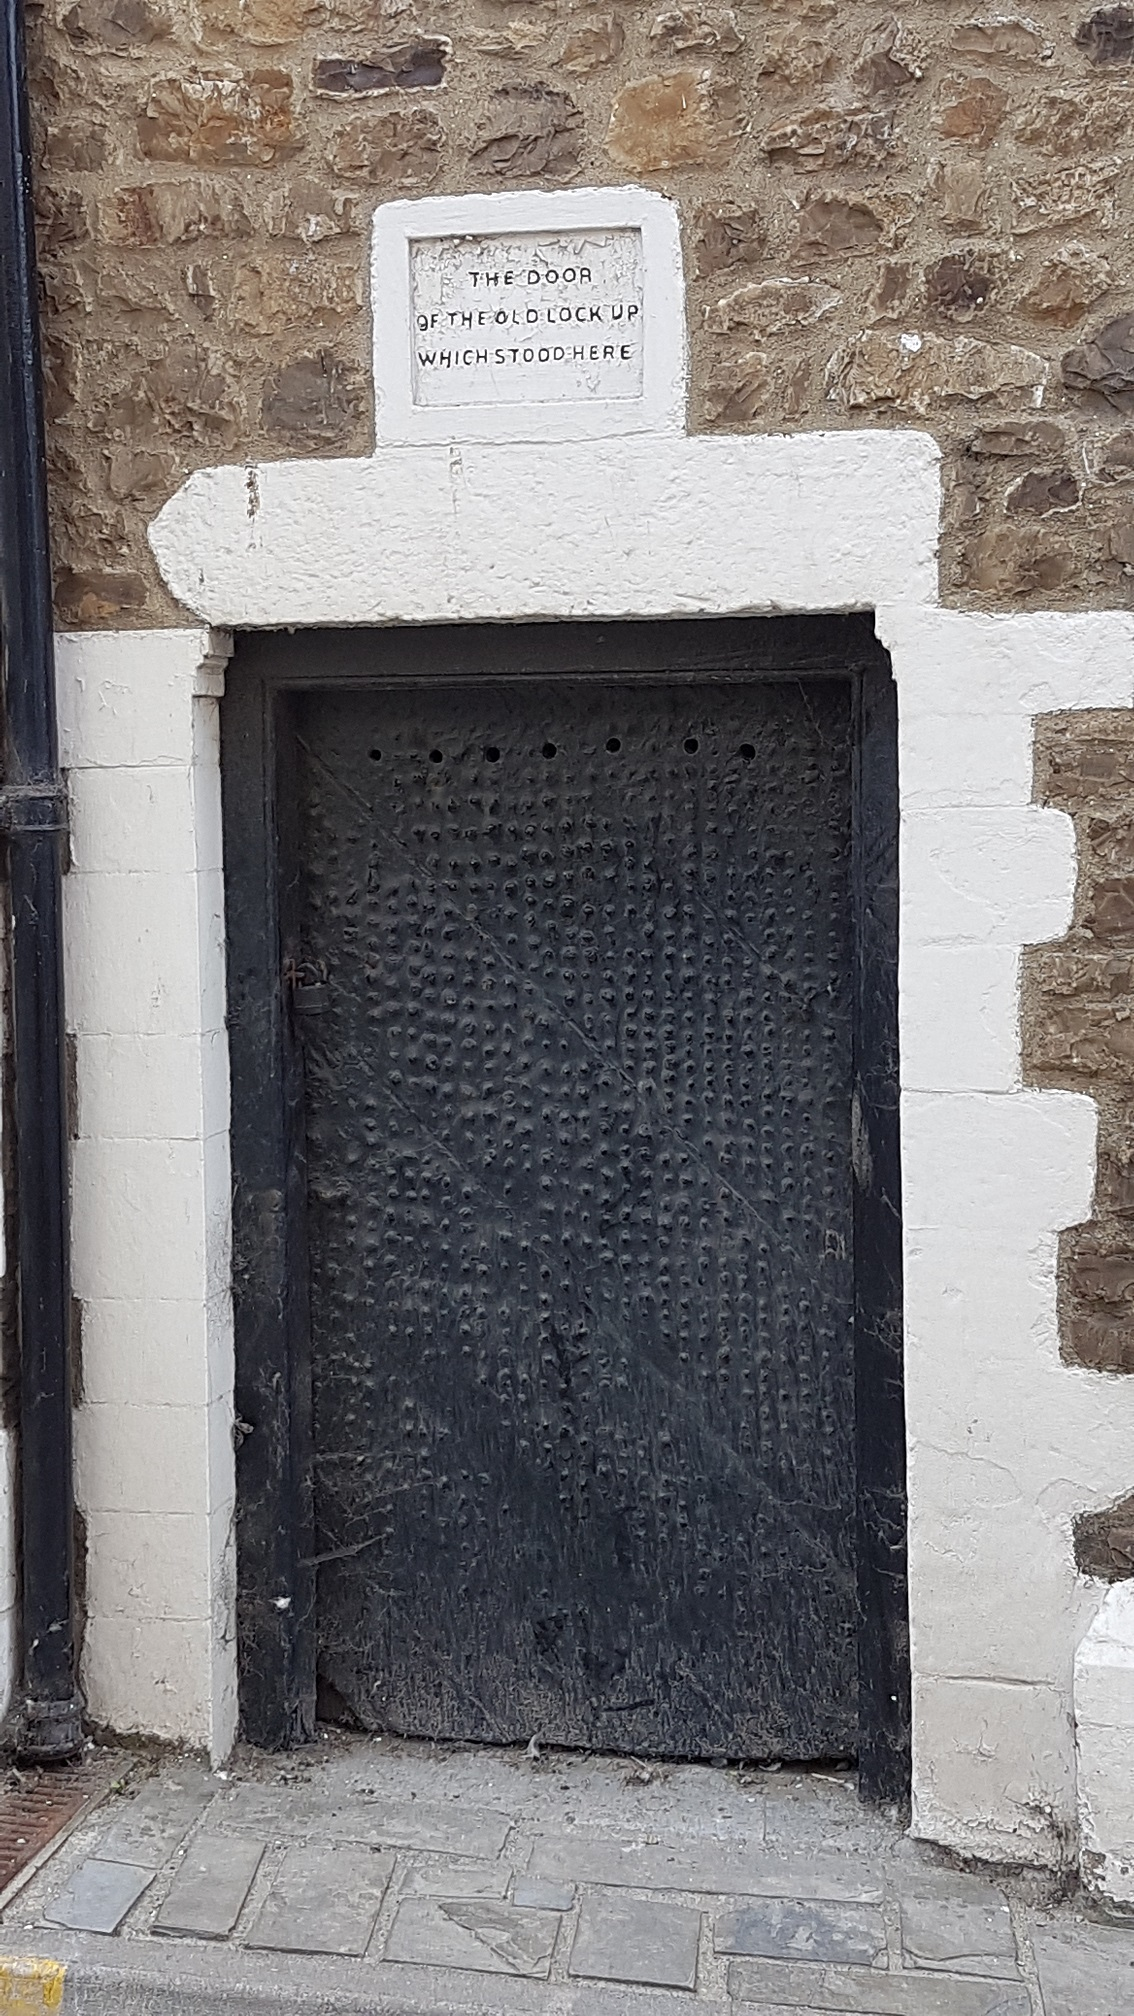 Close-up of door to the lock-up, showing plaque above the lintel, which reads 'The door of the old lock up which stood here'.